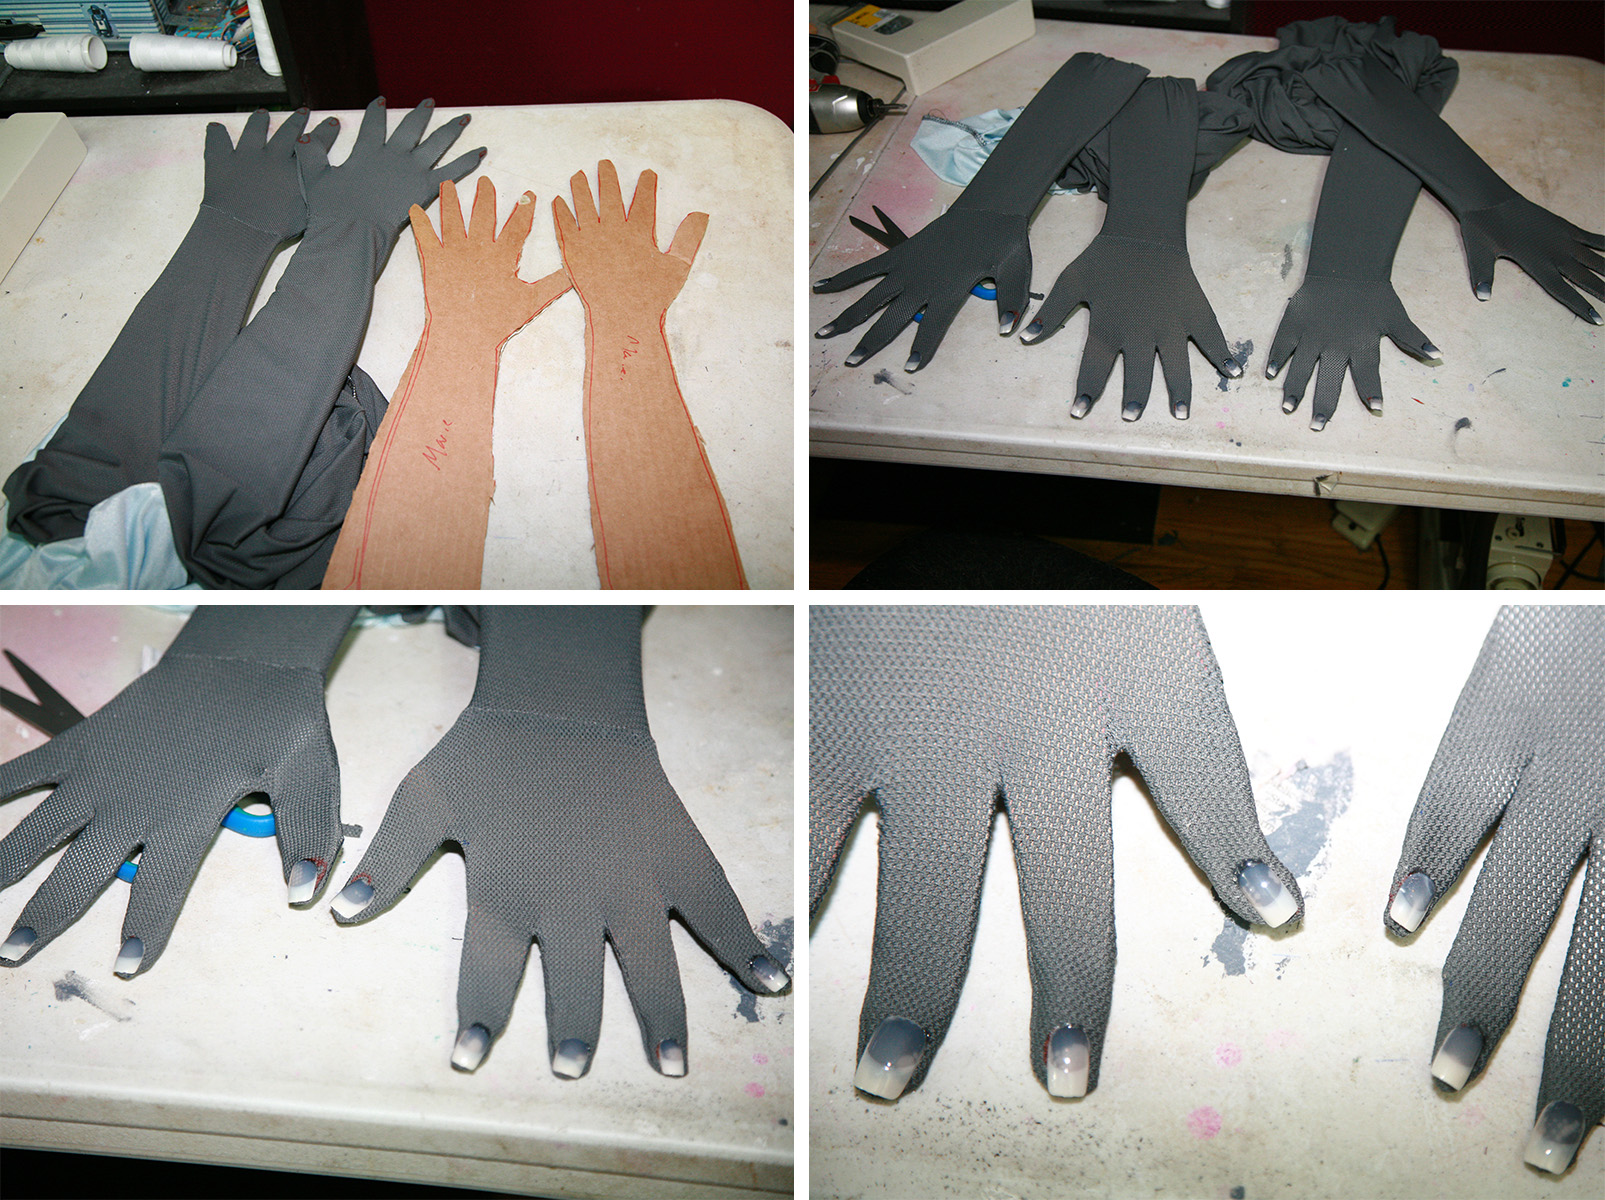 A 4 part image showing fake nails being applied to the fingers of a grey bodysuit.